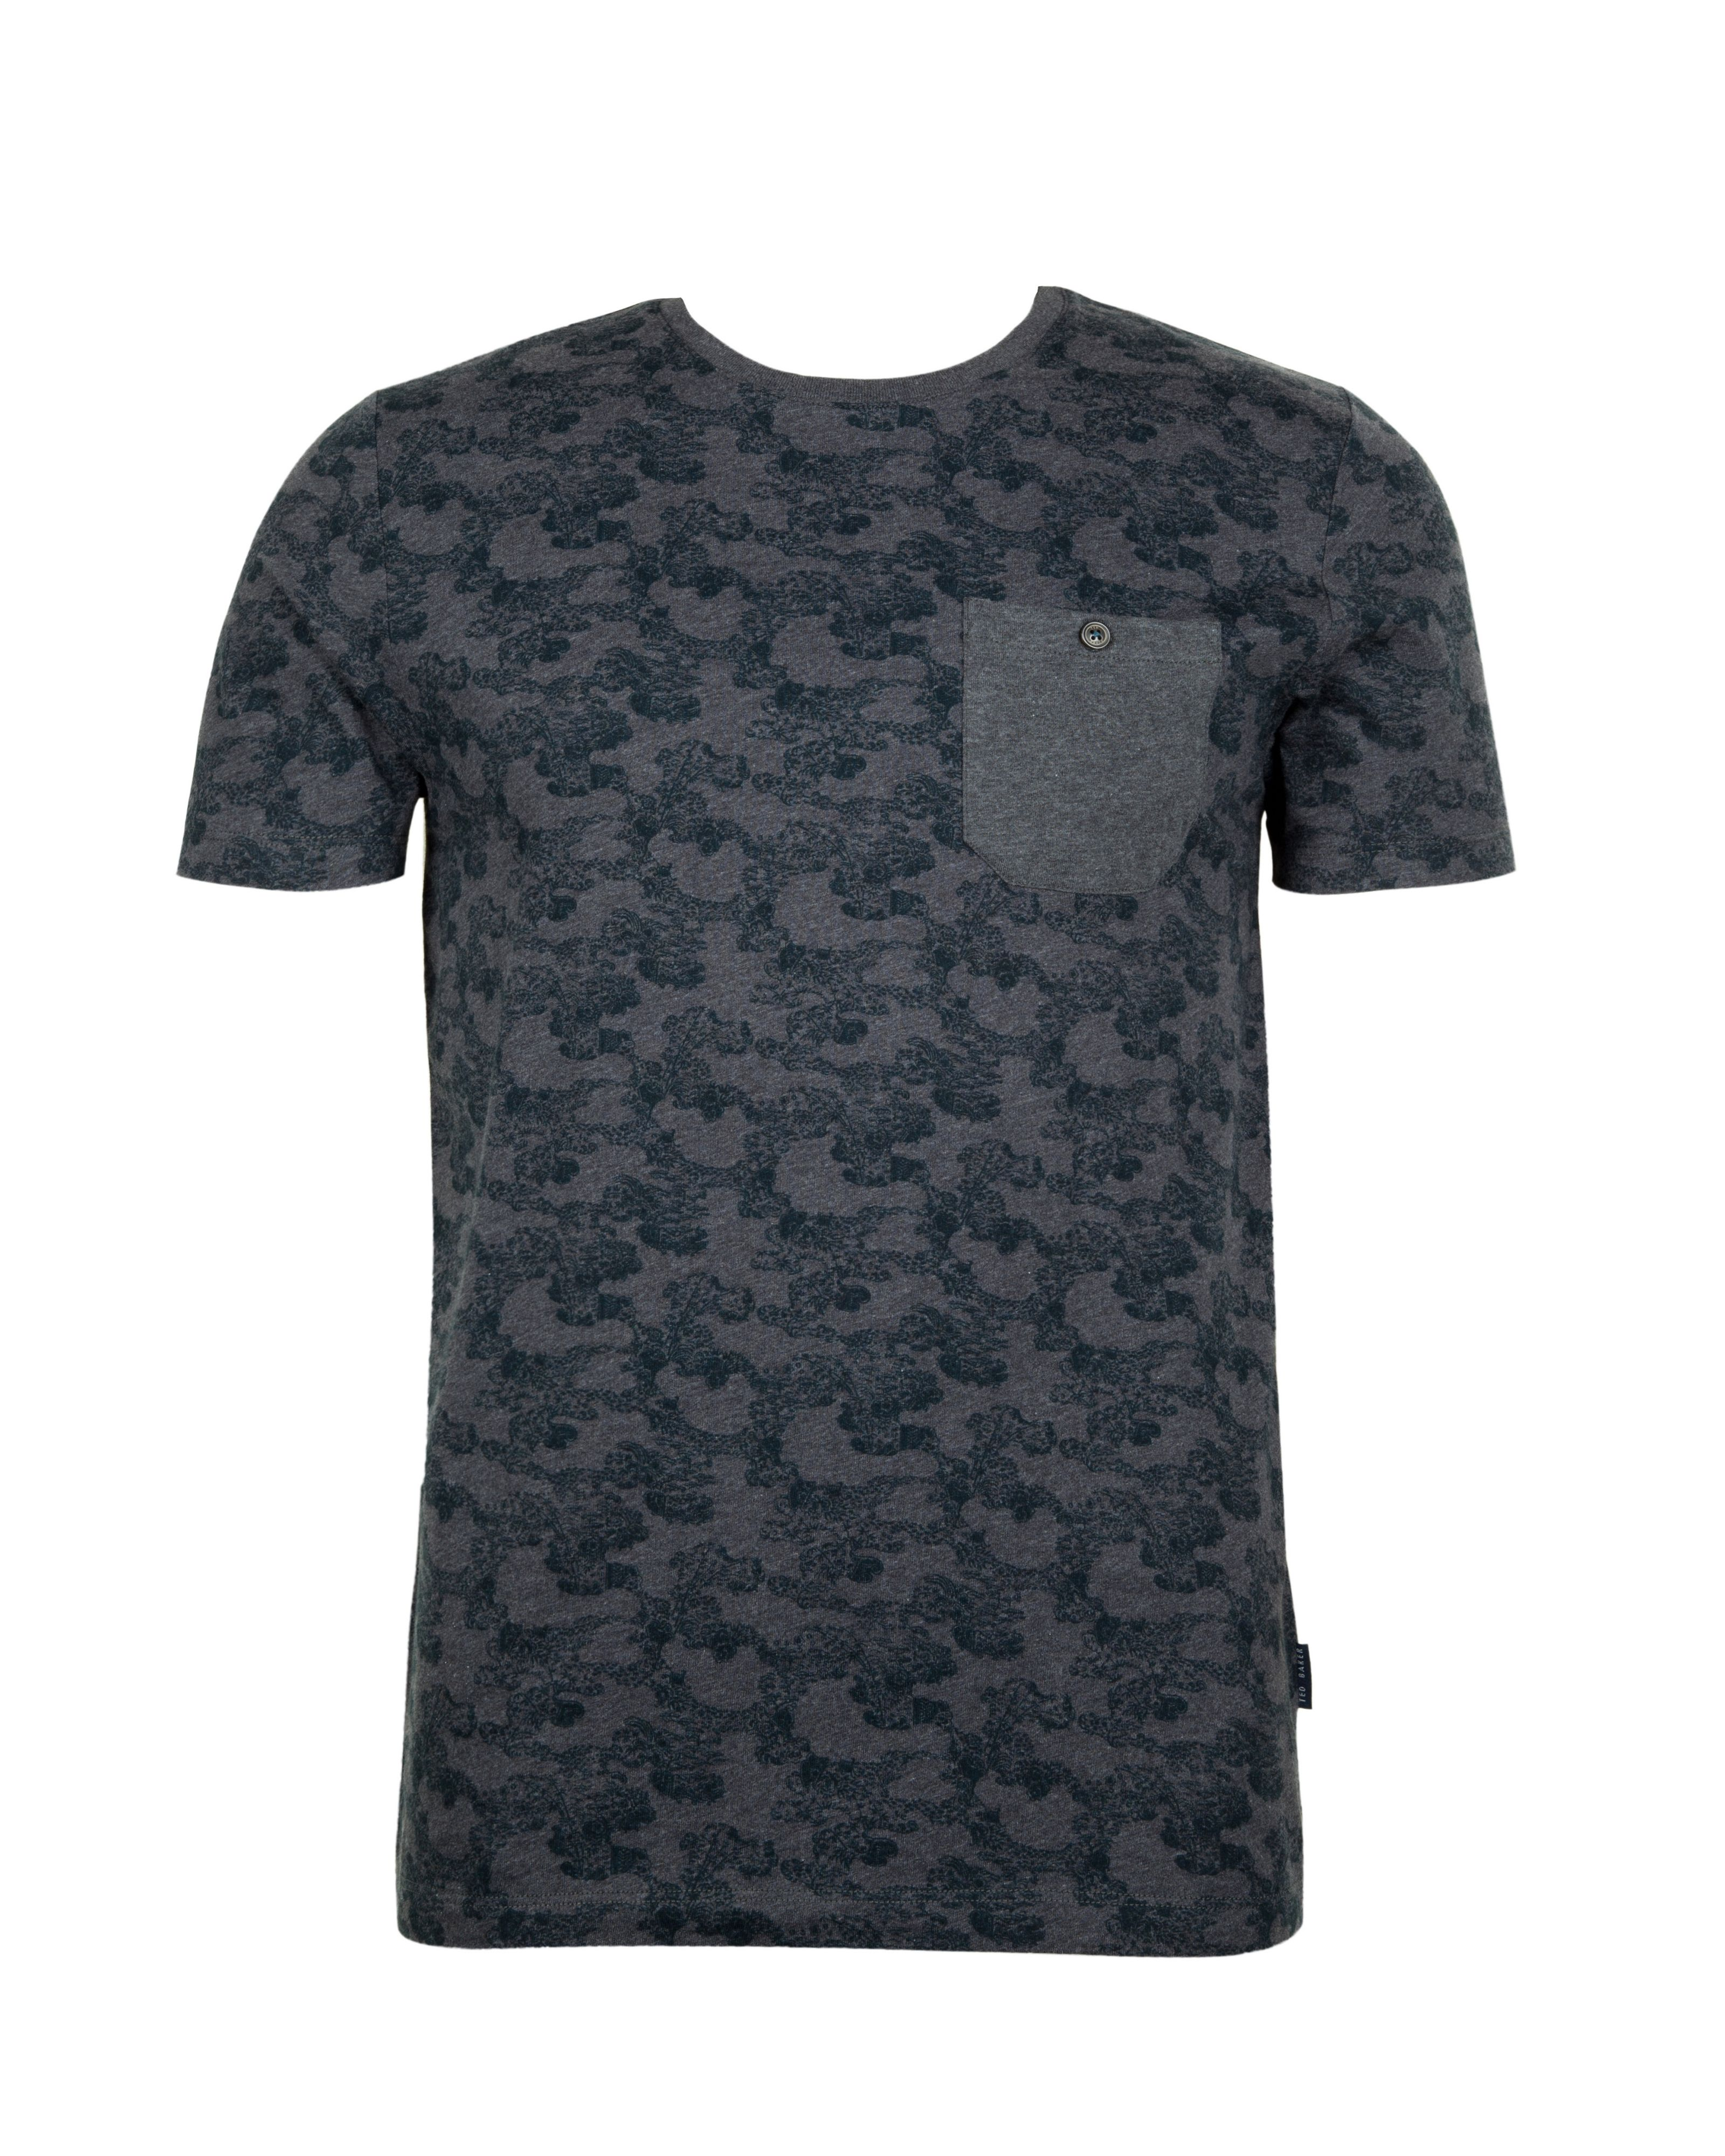 Wilsden printed graphic t-shirt